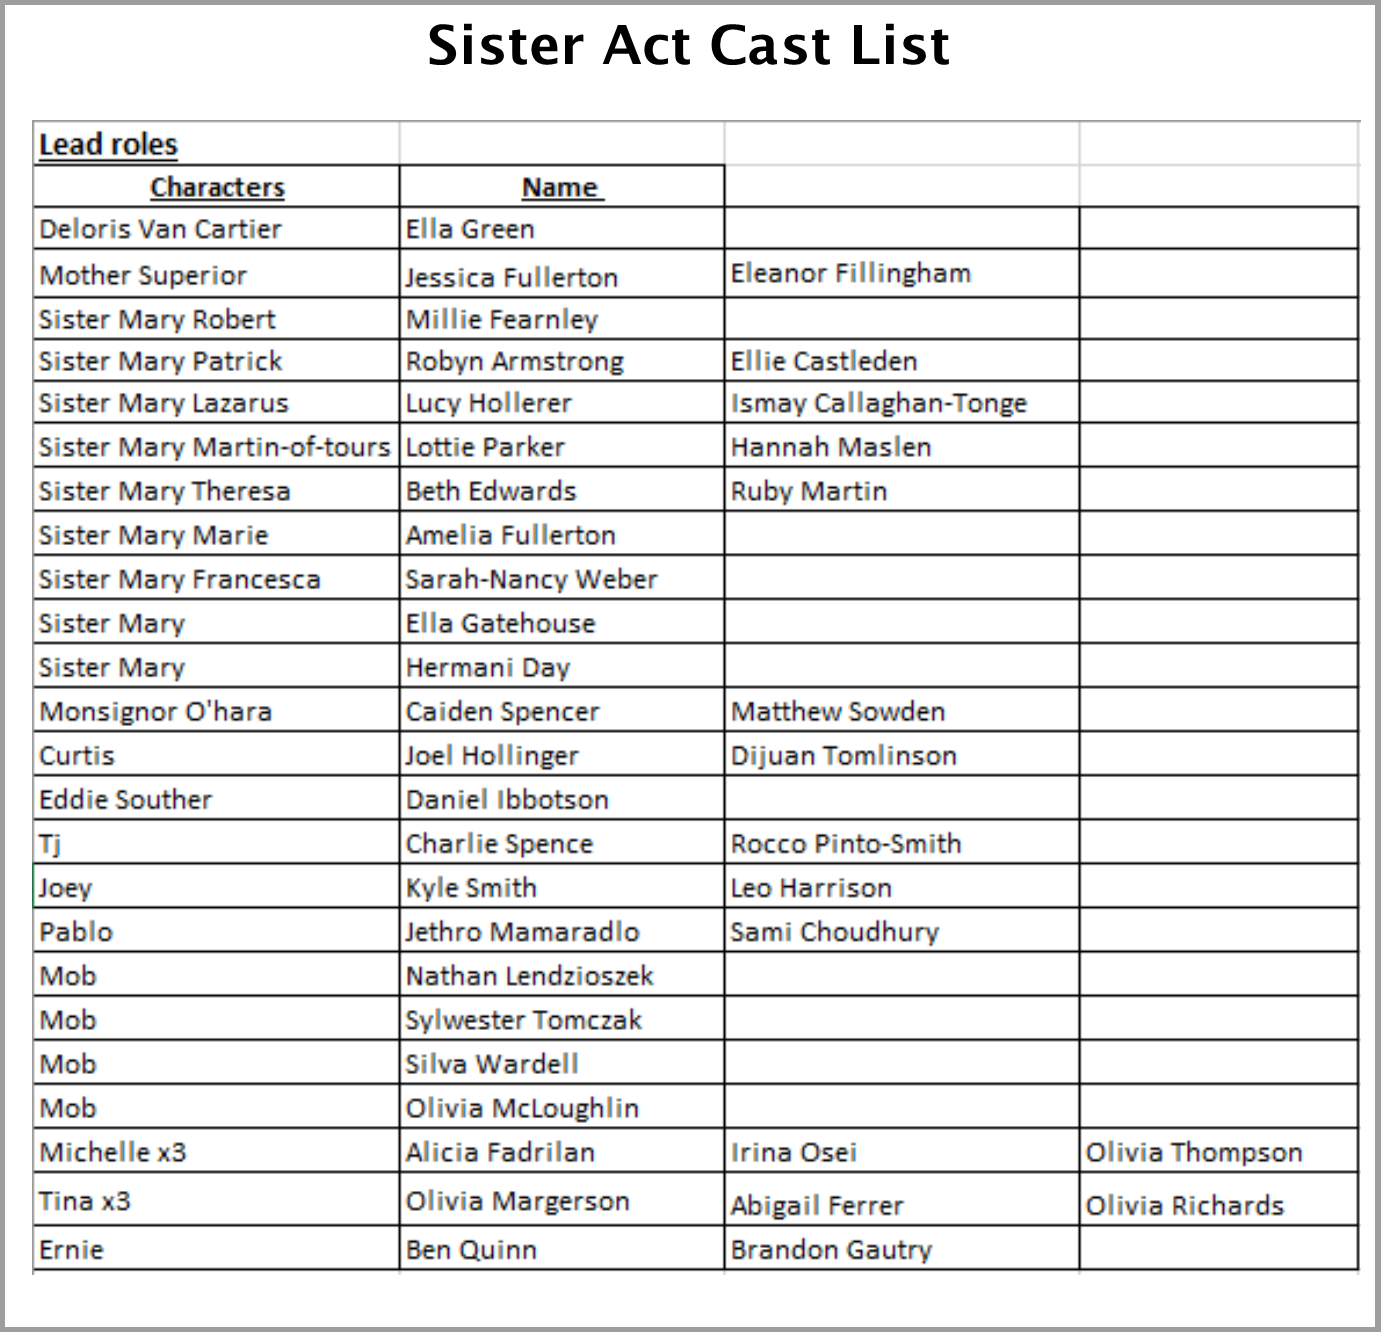 sister act cast1.png